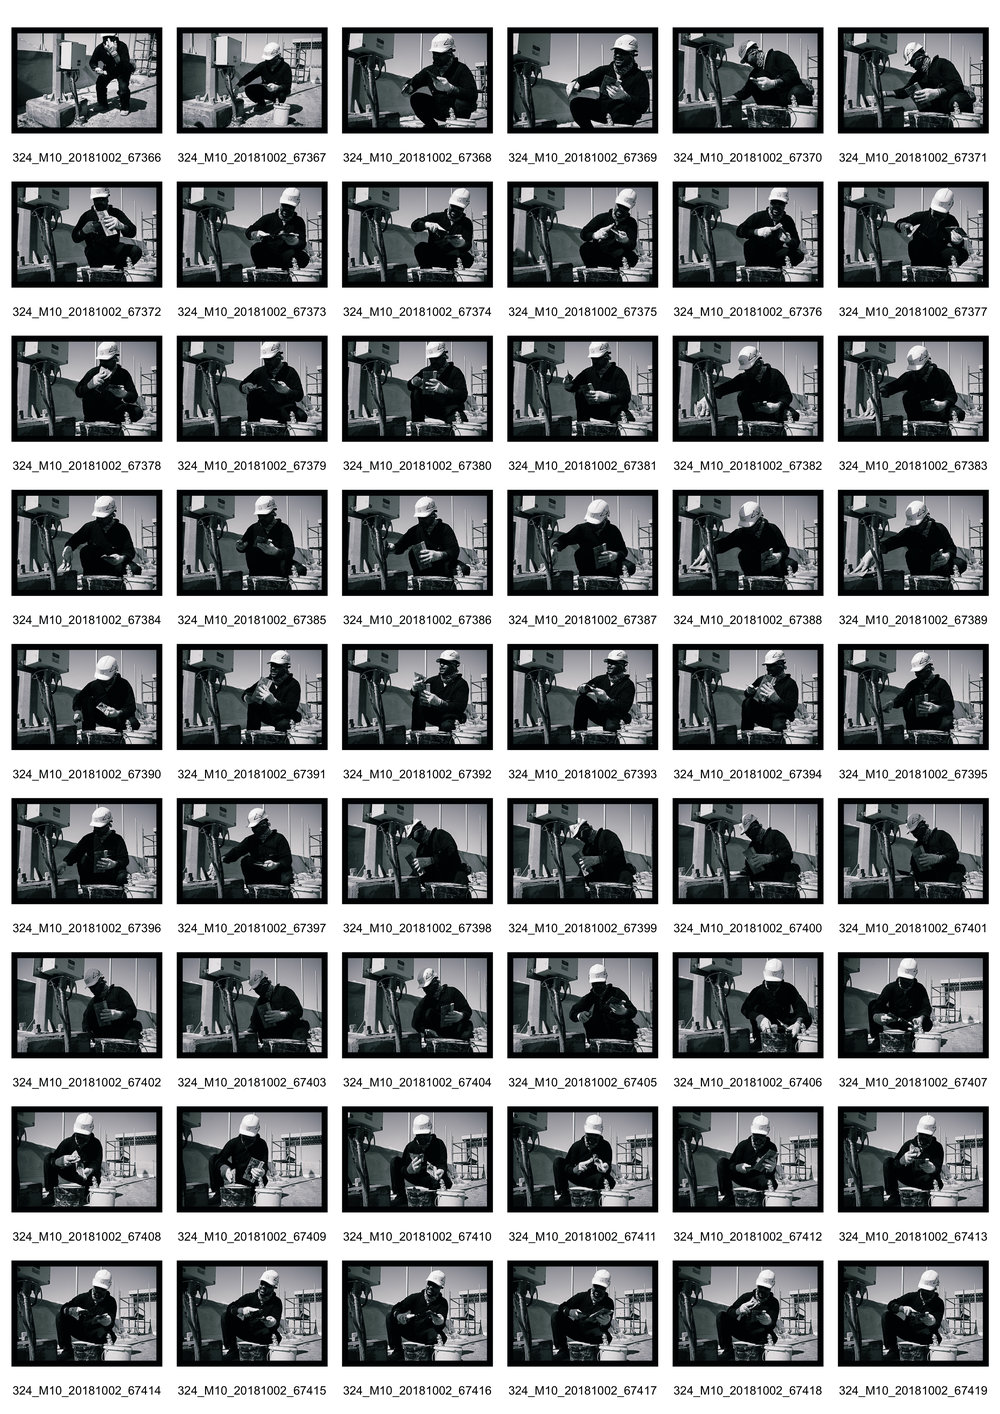 Person at Work I - Contact Sheet 1 of 2